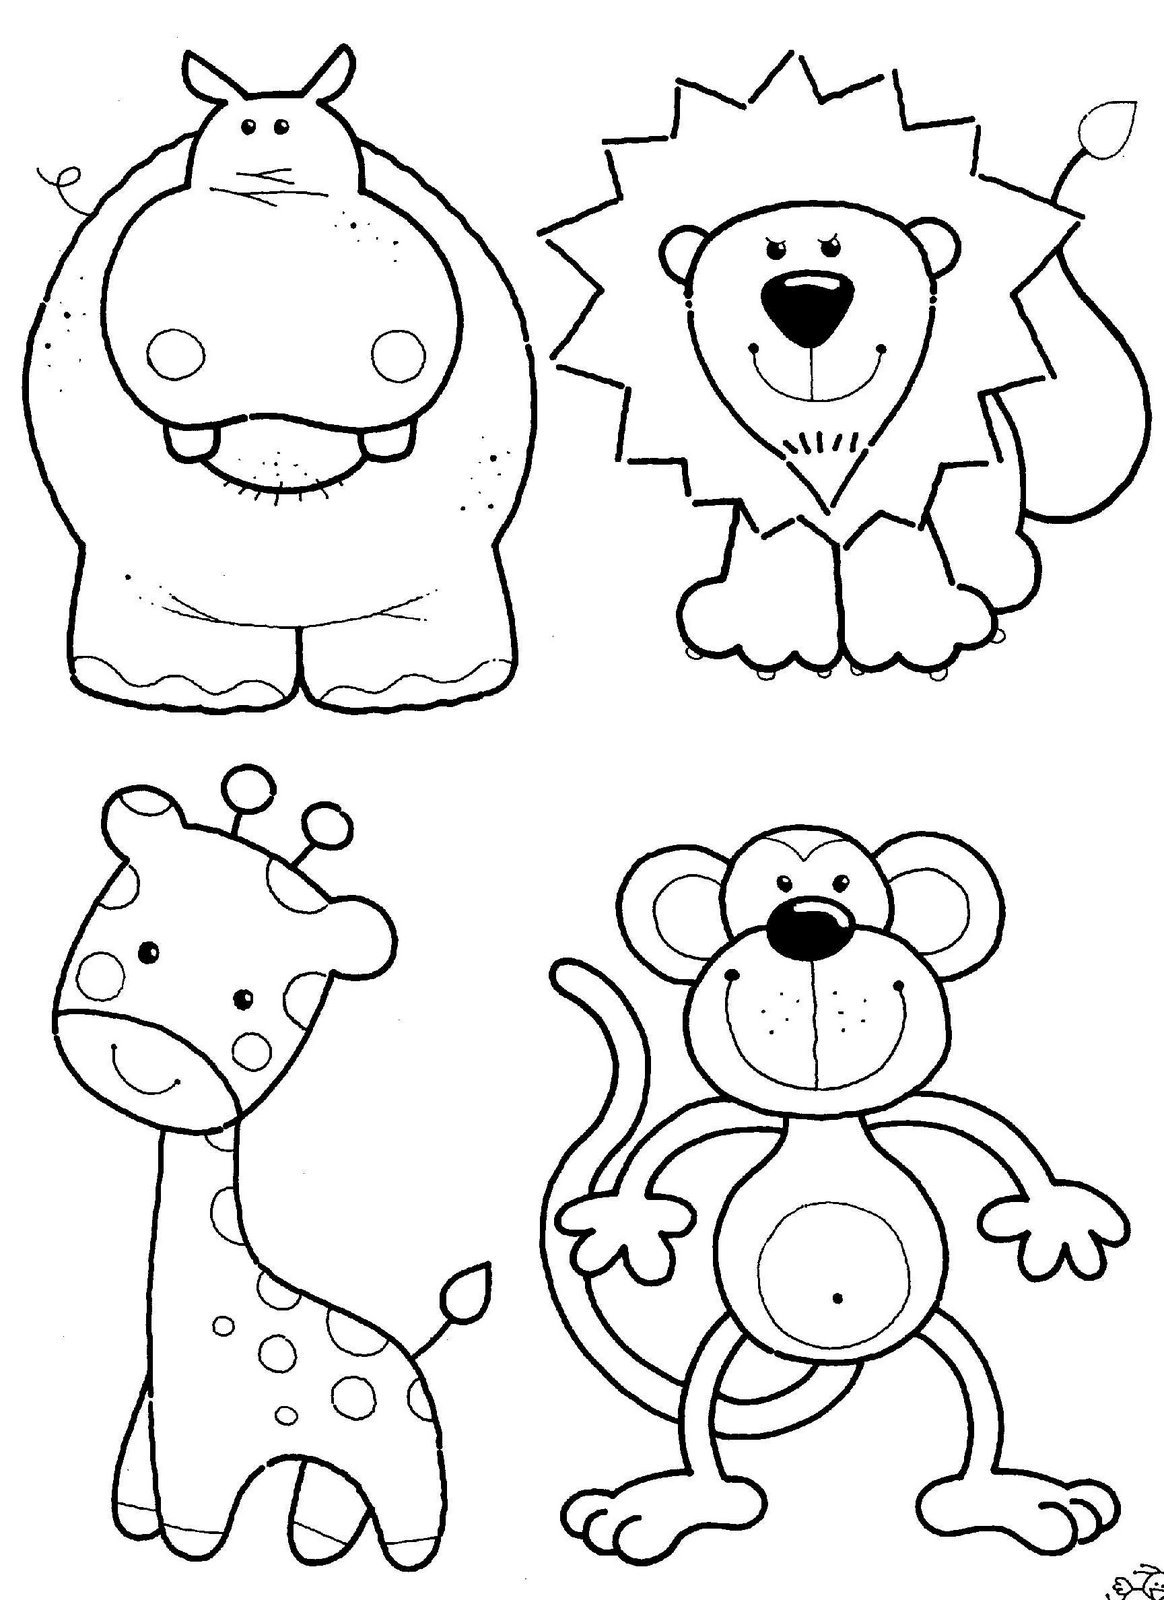 Kids Coloring Pages Pdf Coloring Cool Coloring Pages For Kids Pdf